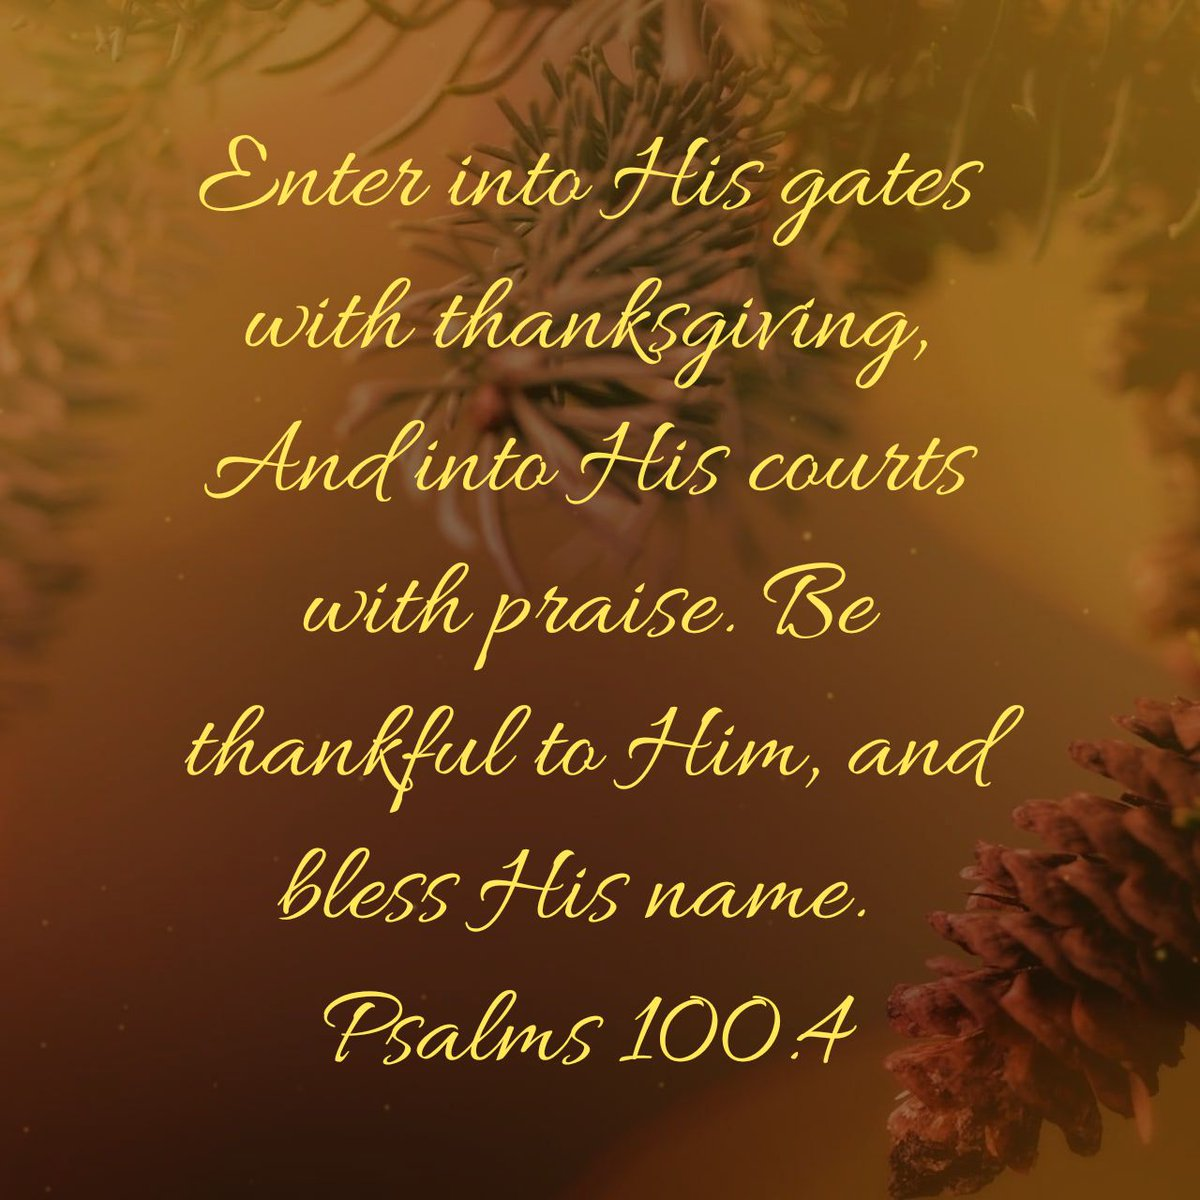 """Joey Williams on Twitter: """"The attitude of #thanksgiving is not a once a year event. We should strive everyday to enter into the presence of the Lord with thankfulness  and #praise. What"""